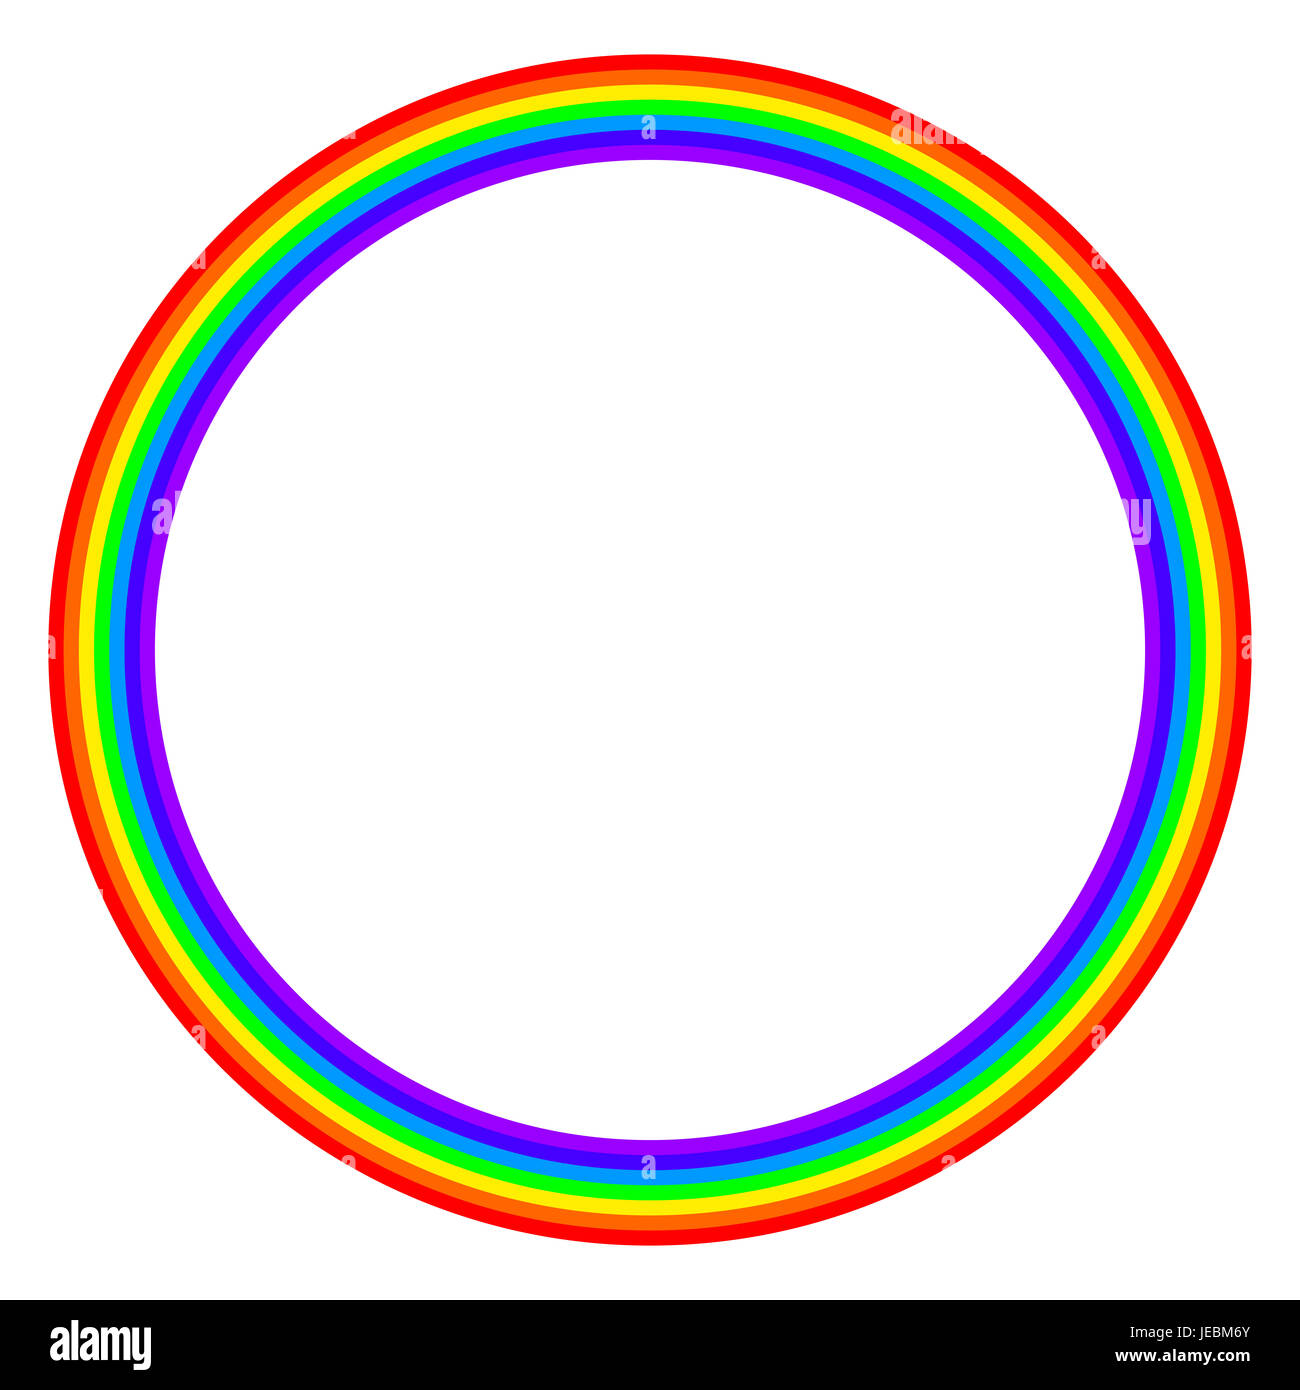 Rainbow colored circle on white background. Ring with rainbow bands in seven main colors of the spectrum and visible Stock Photo